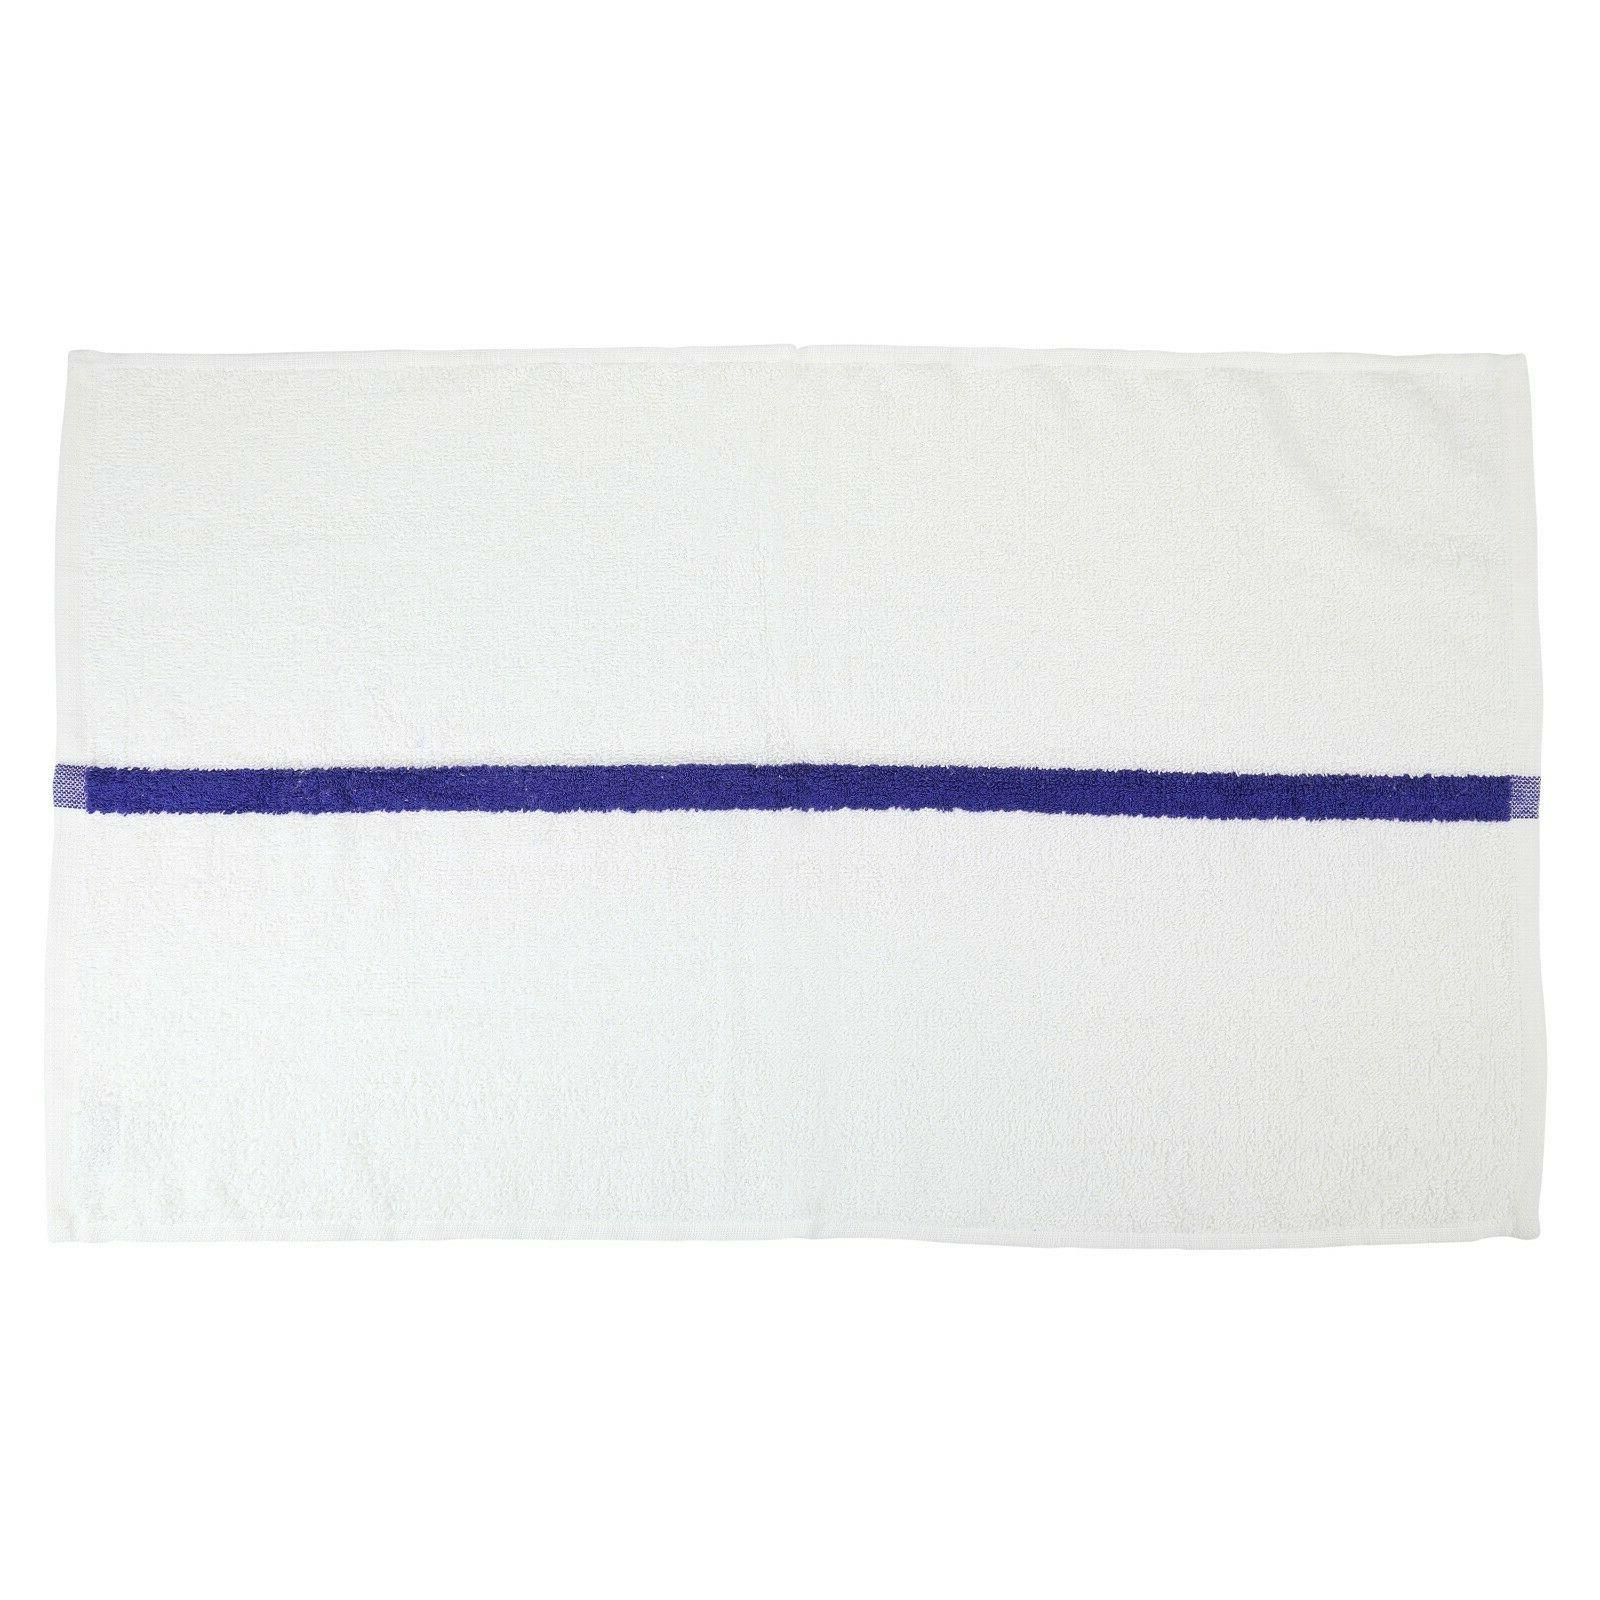 12 Gym Hand Towels 27 Absorbent Cotton Workout